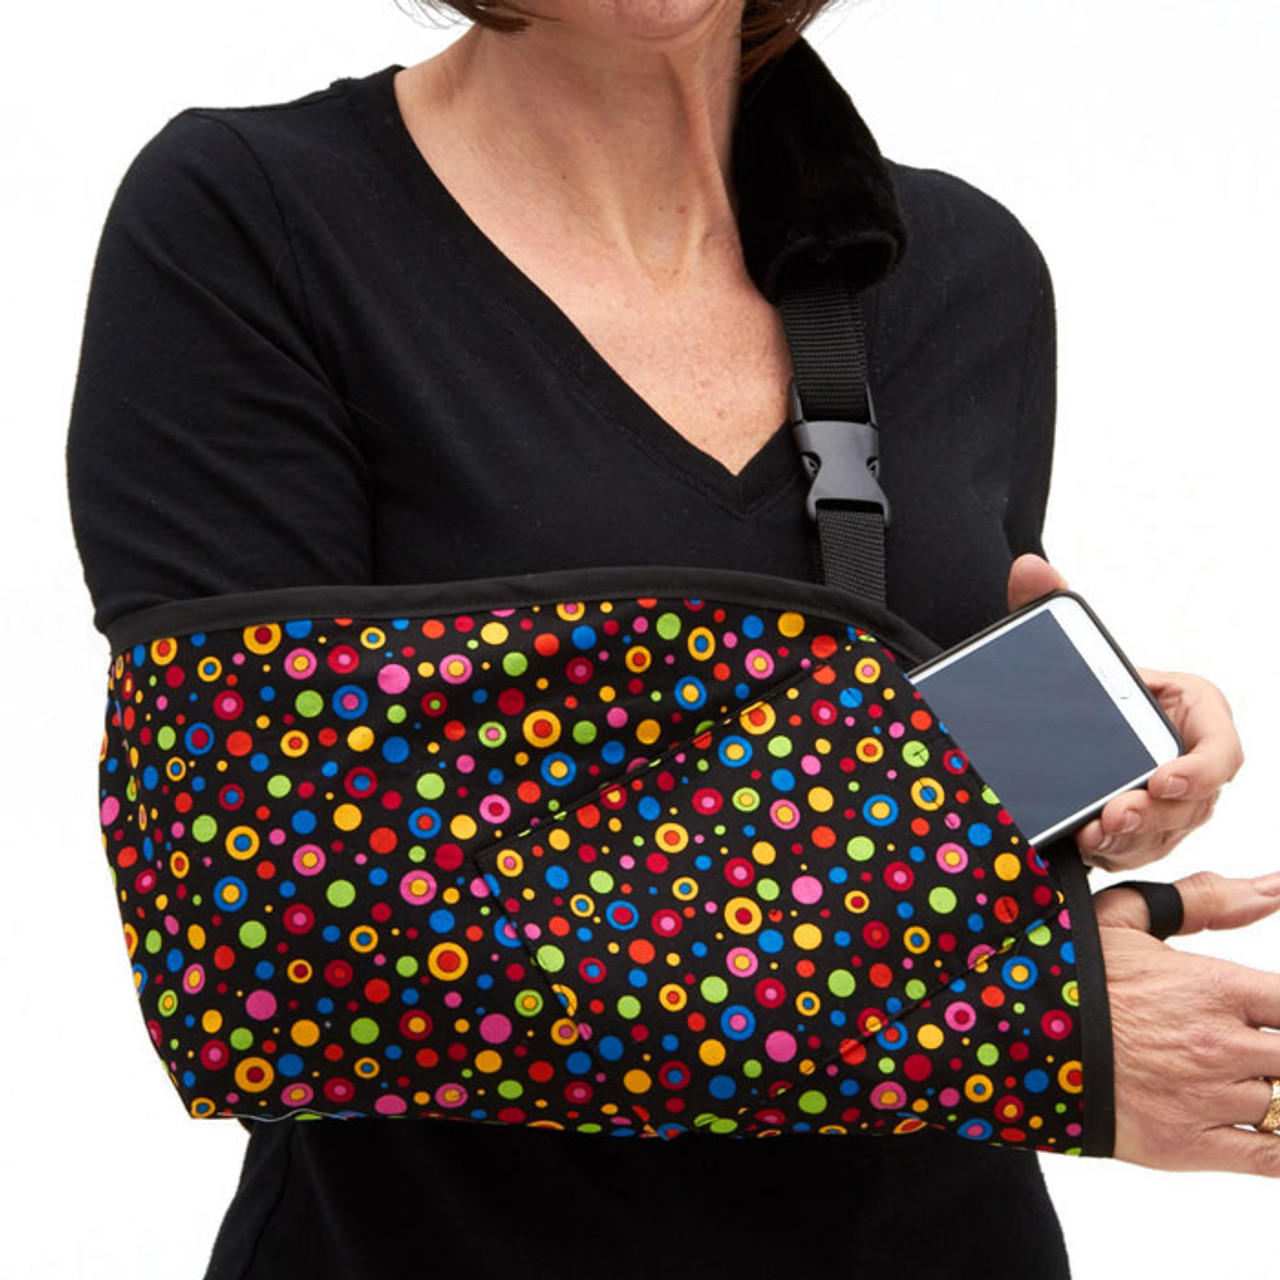 78cf87d935743e Fashionable and Functional Arm Slings in Dots To Go Fabric